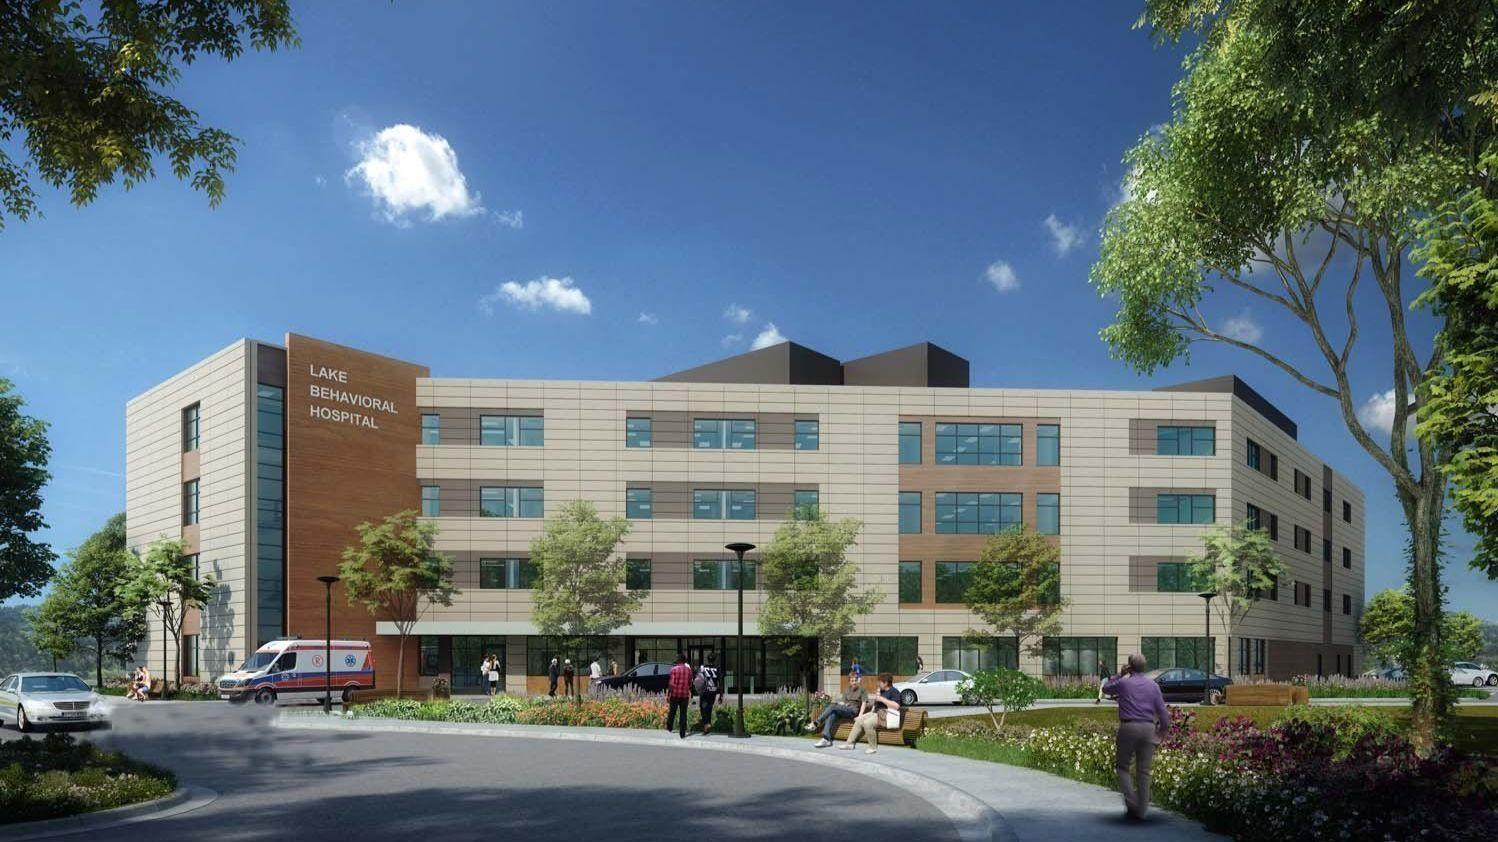 Plans To Expand Lake Behavioral Hospital In Waukegan Receive First